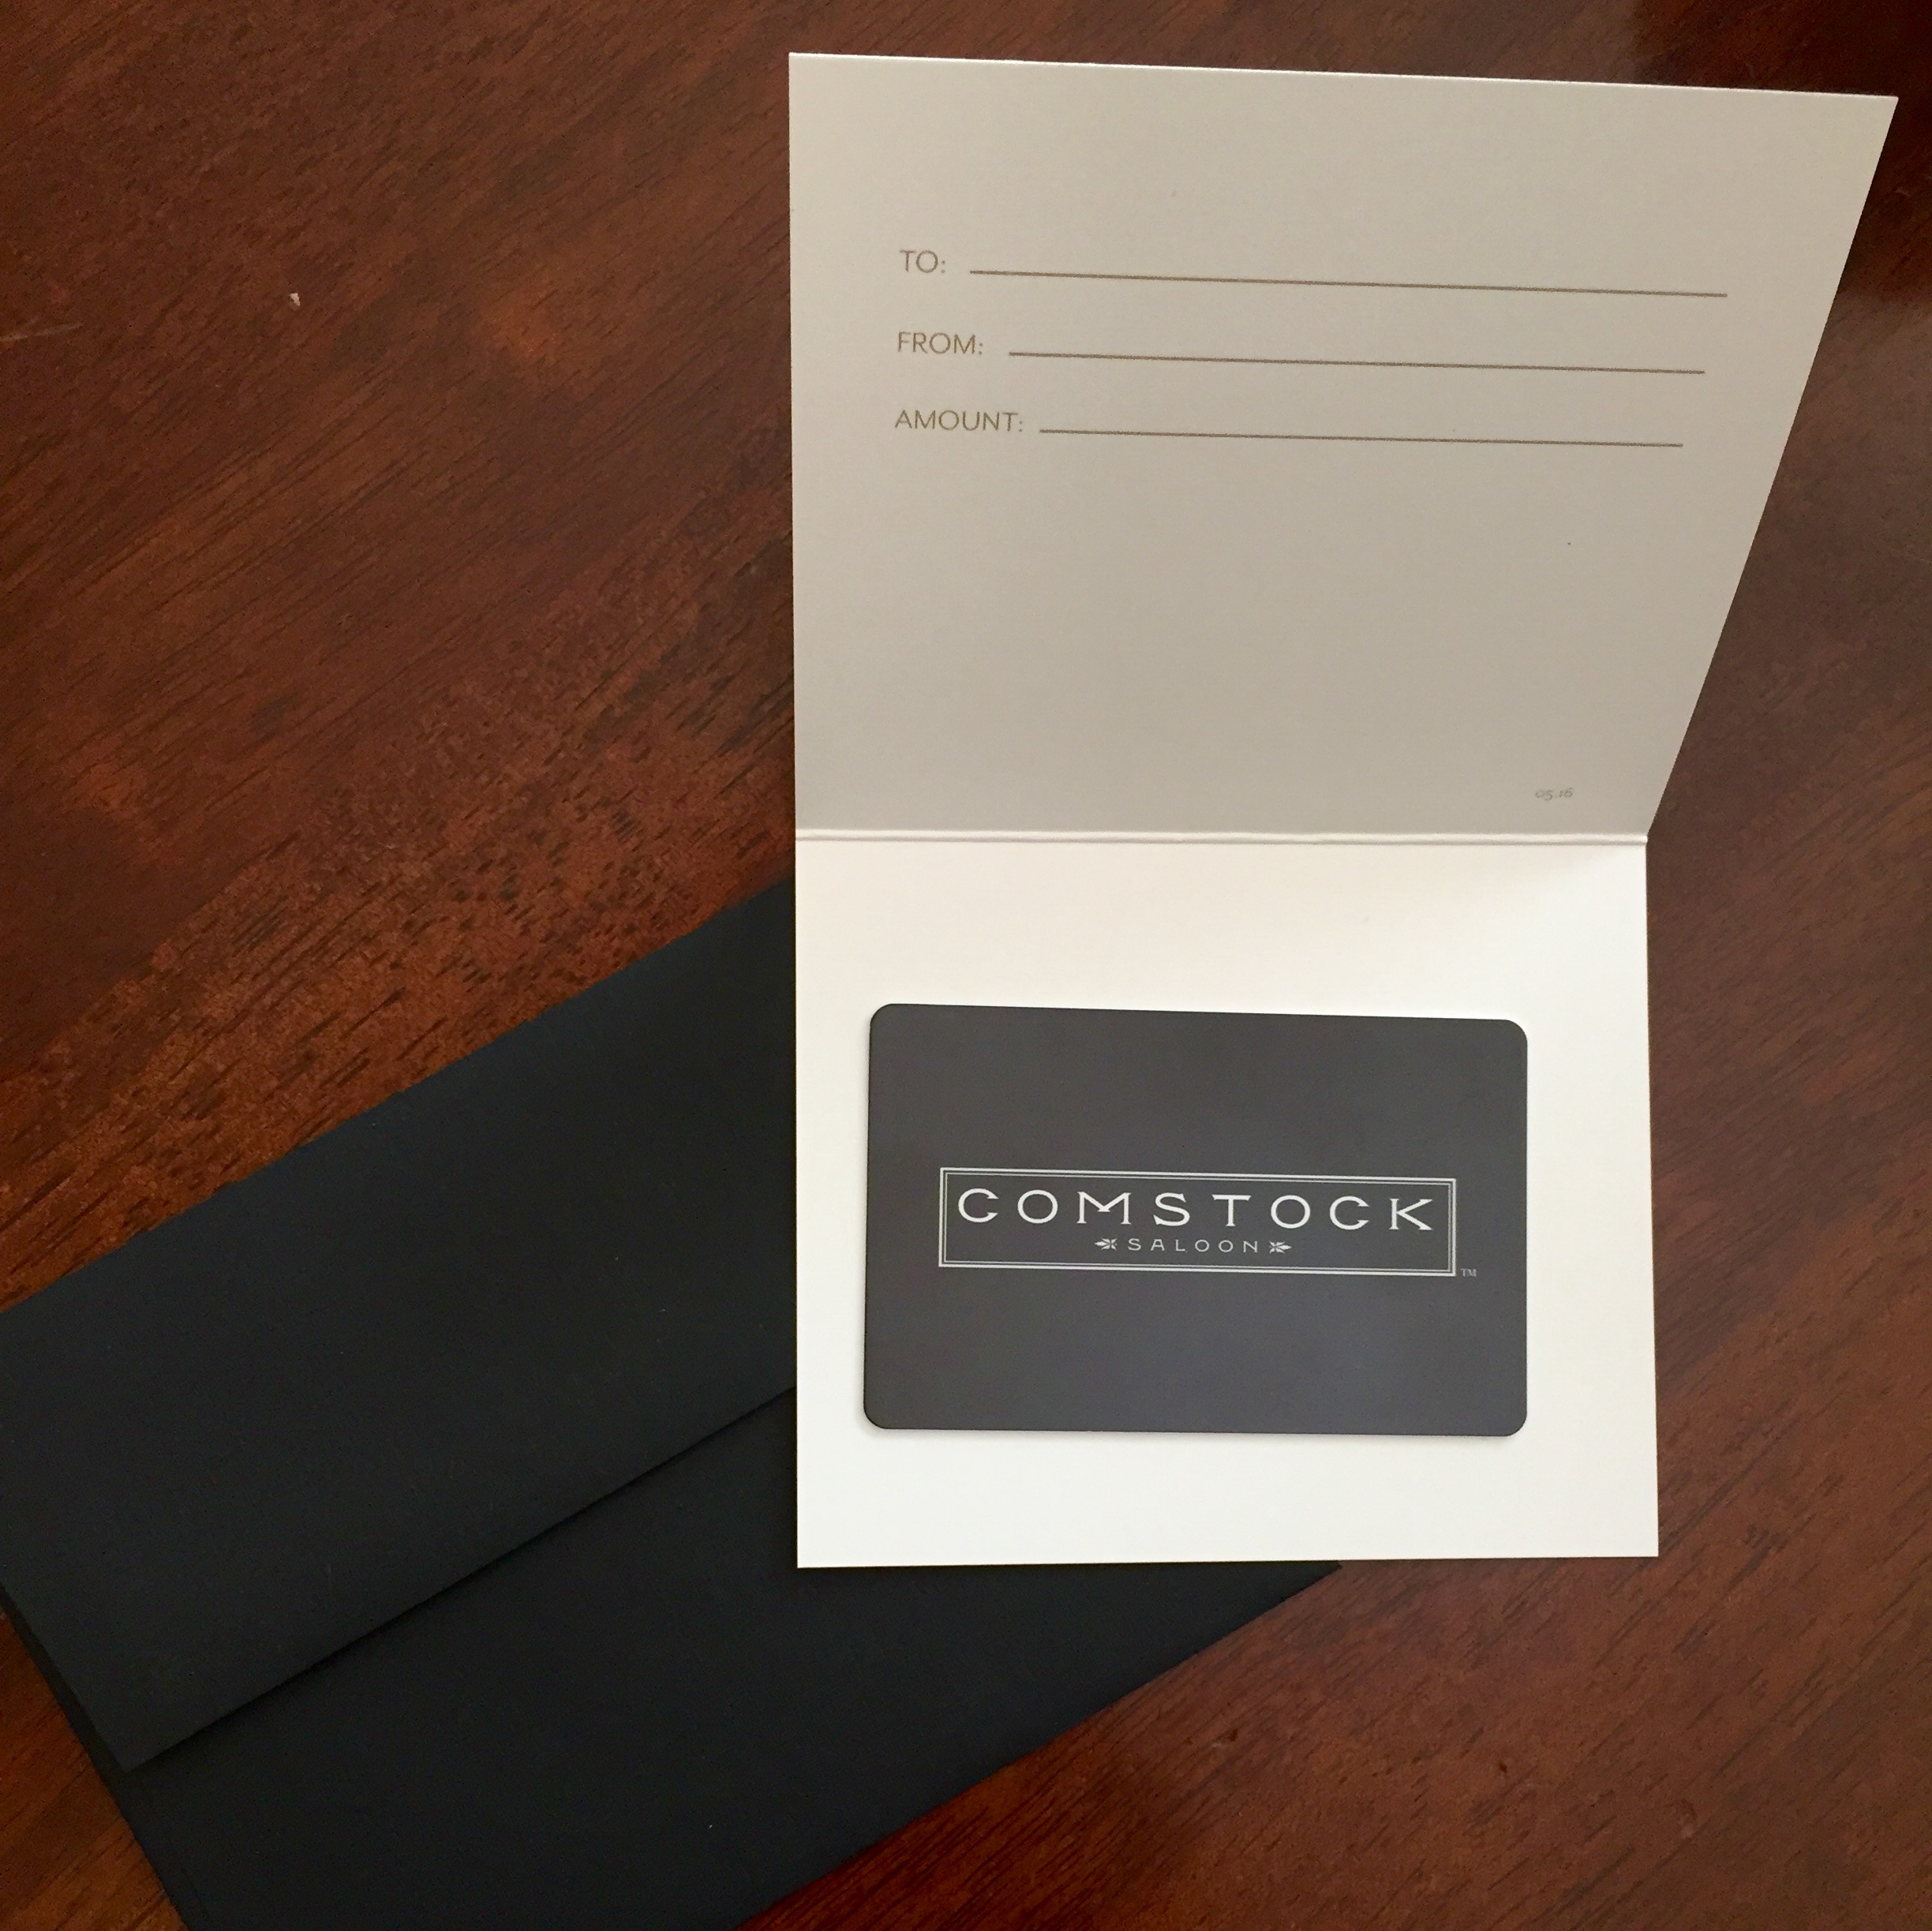 Comstock Gift Card